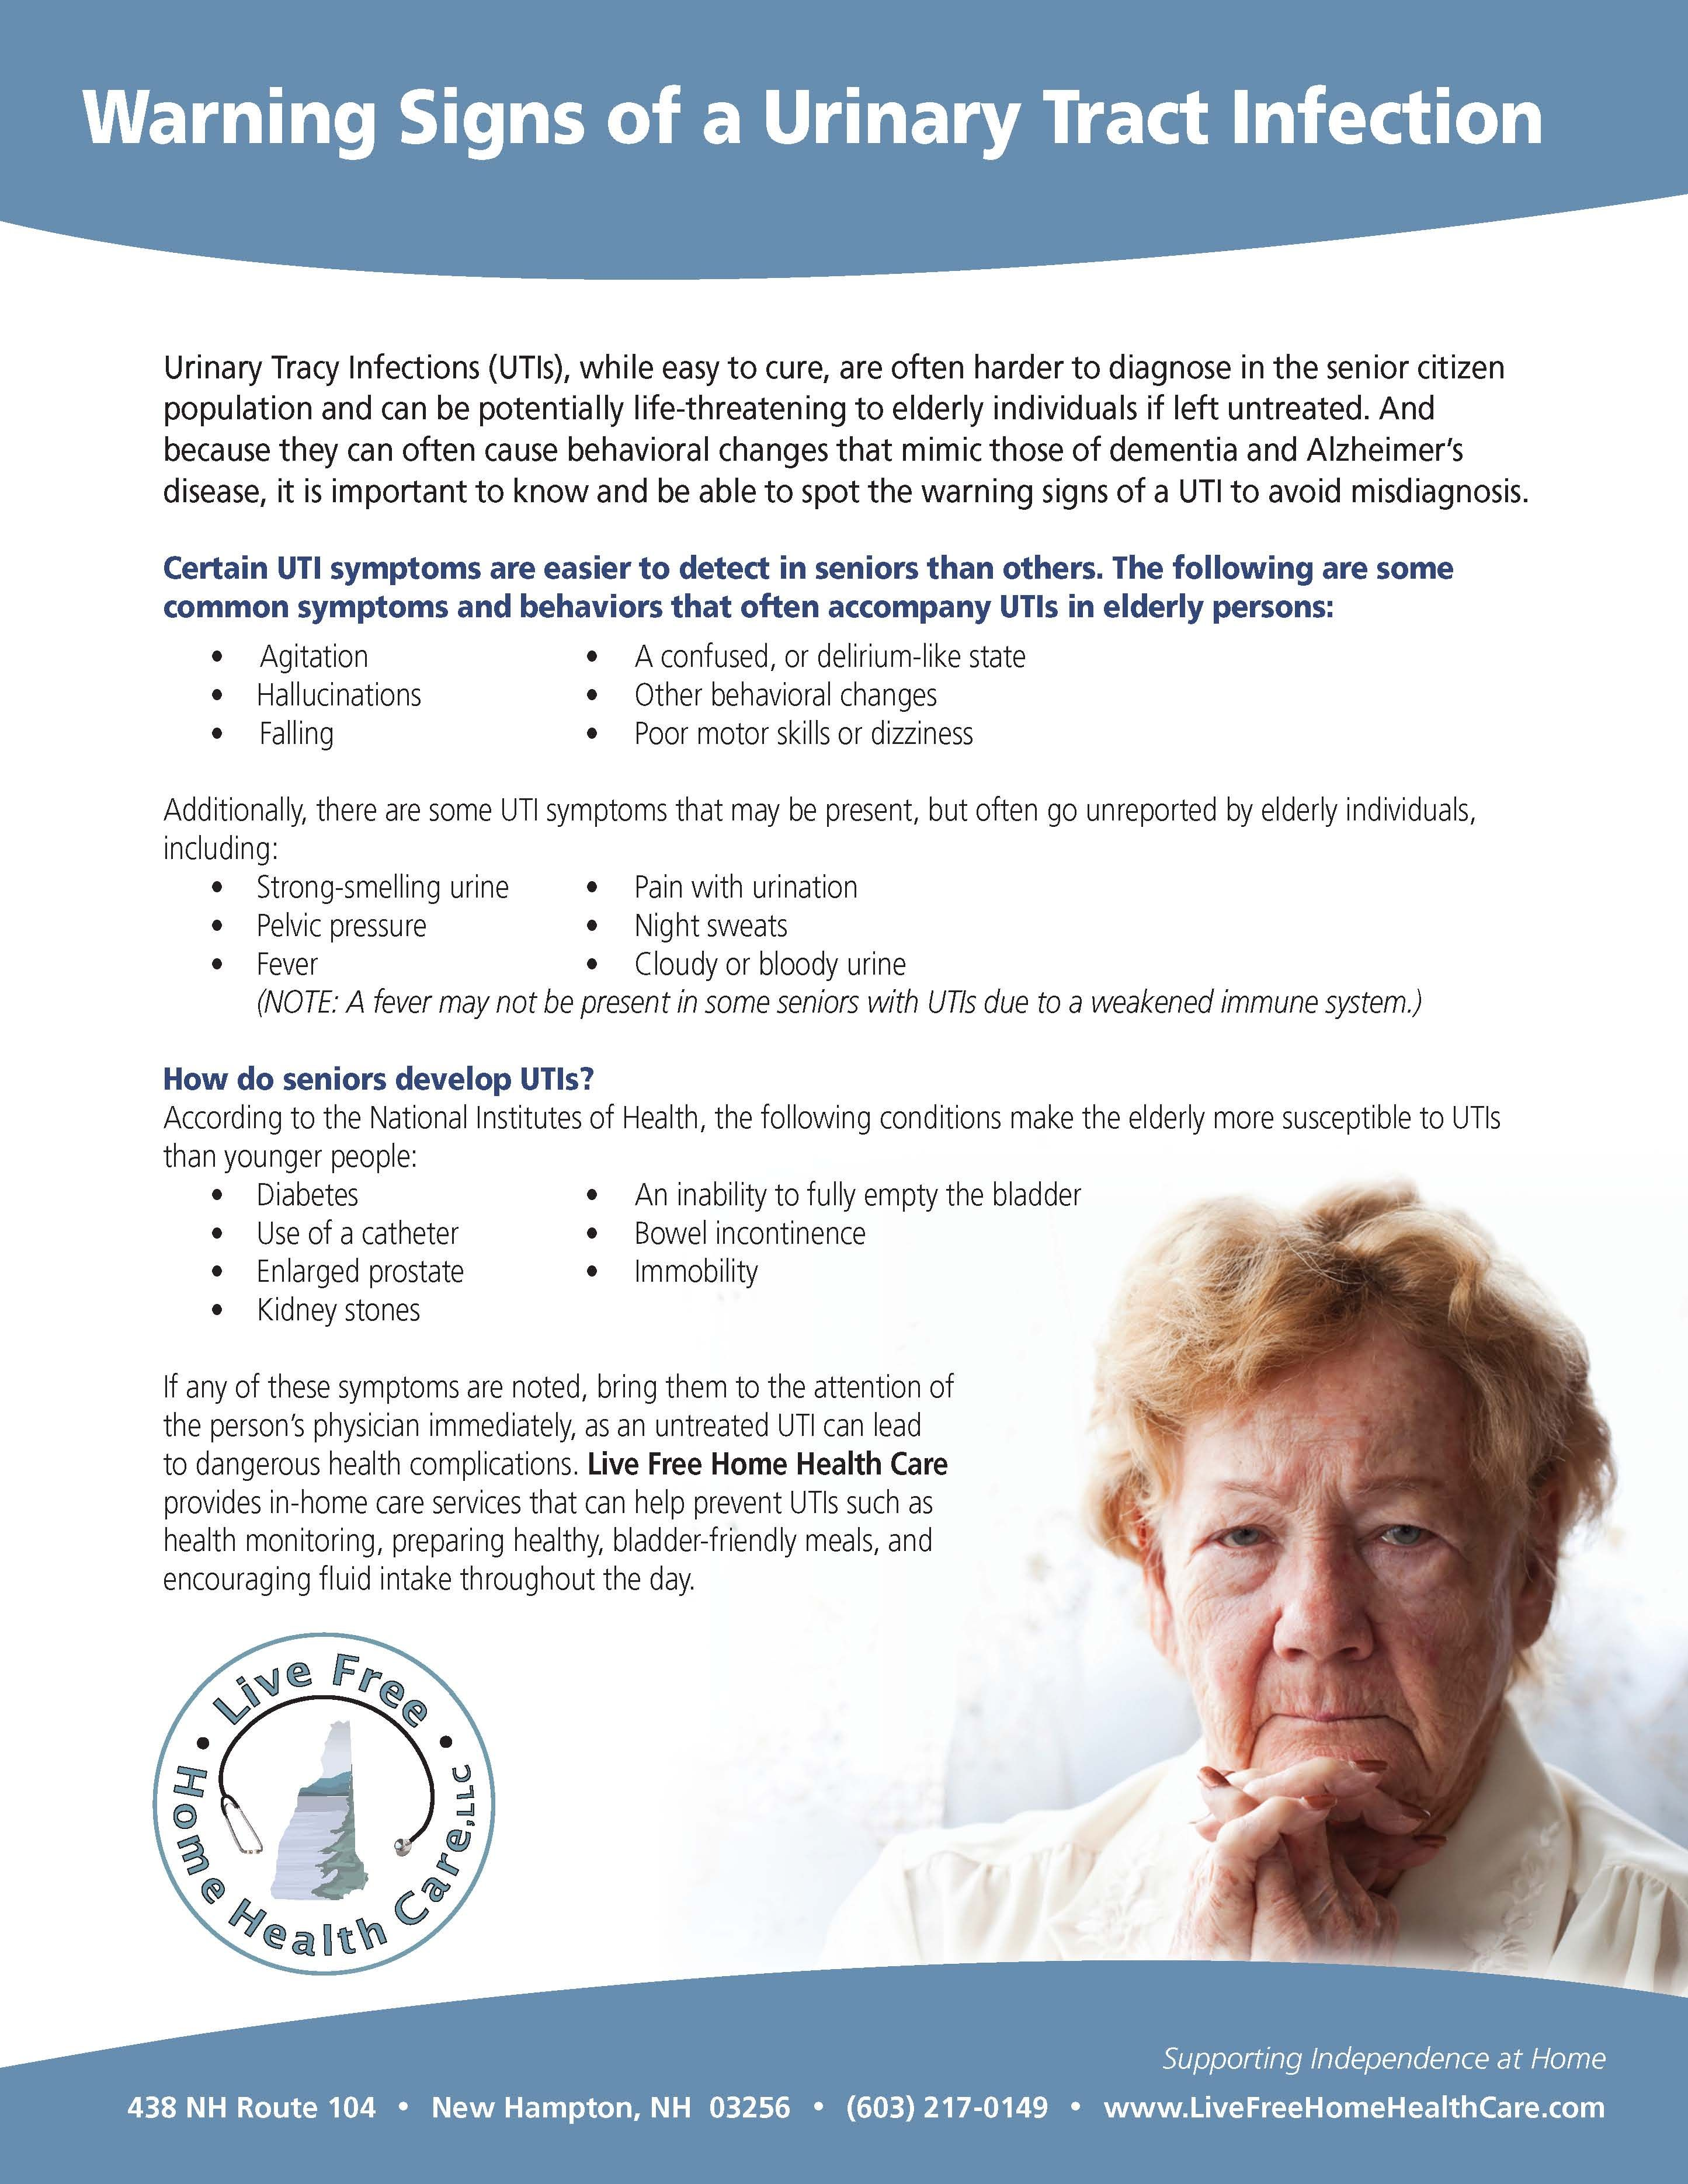 Warning Signs of a Urinary Tract Infection #UTI #eldercare